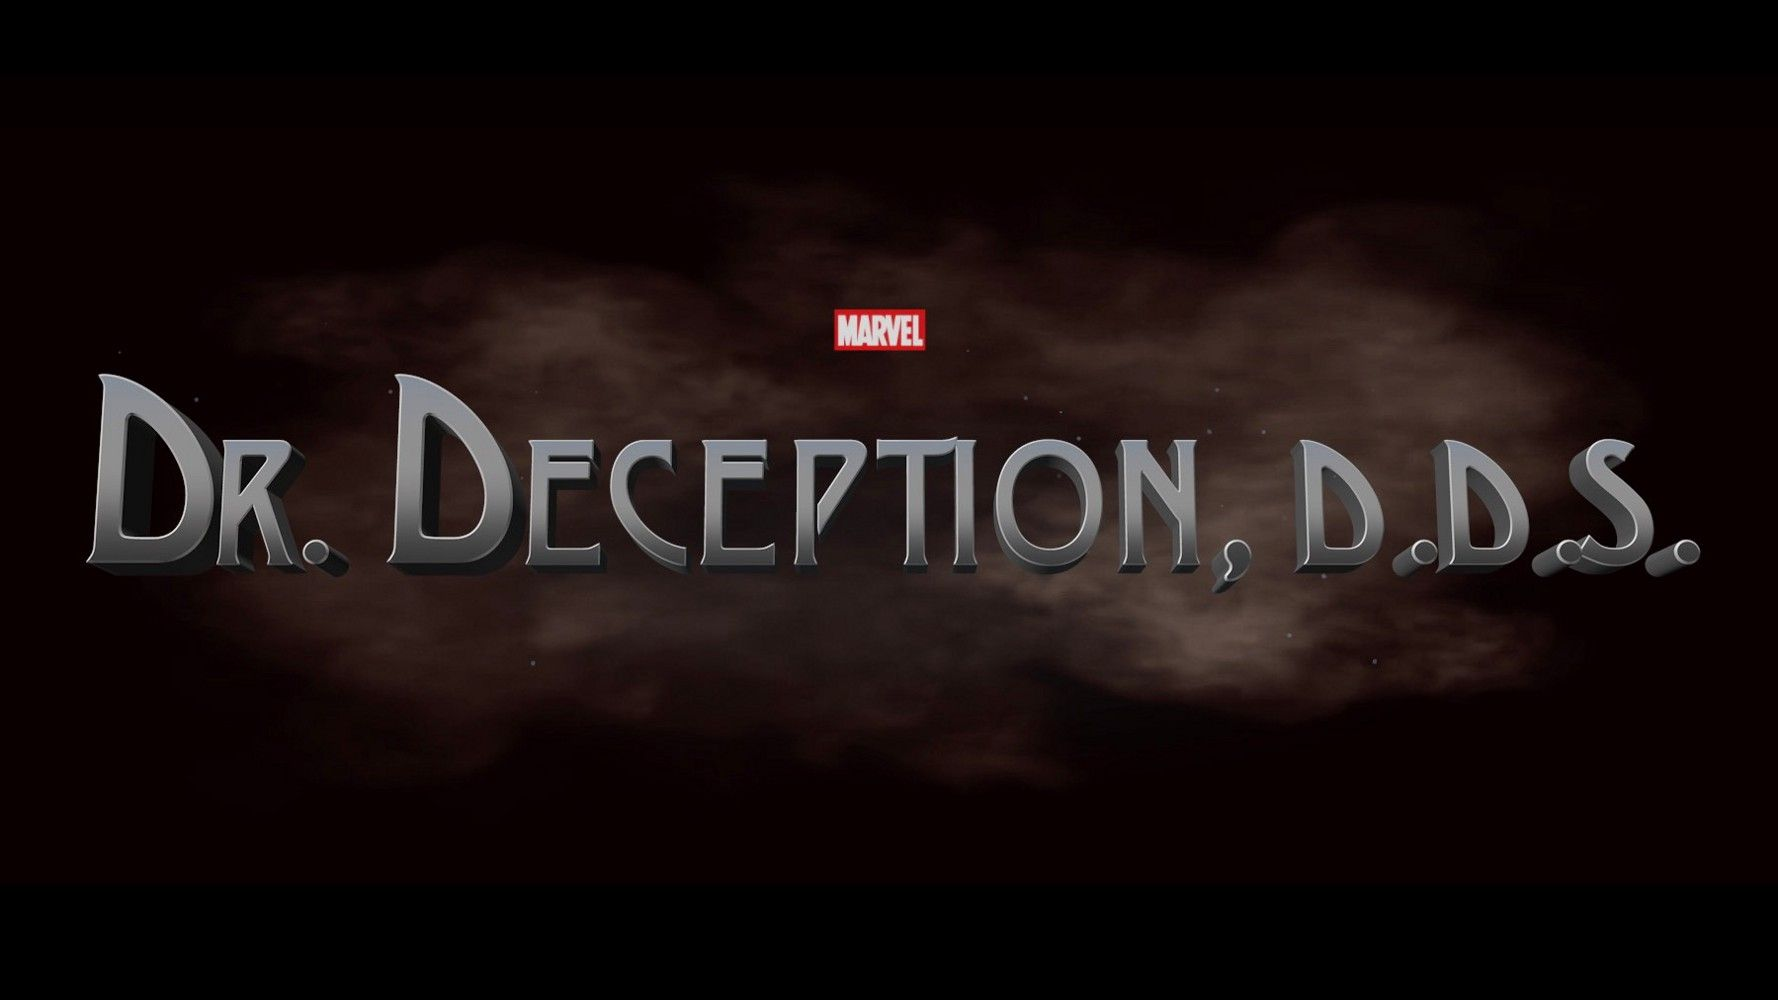 marvel-phase-4-deception